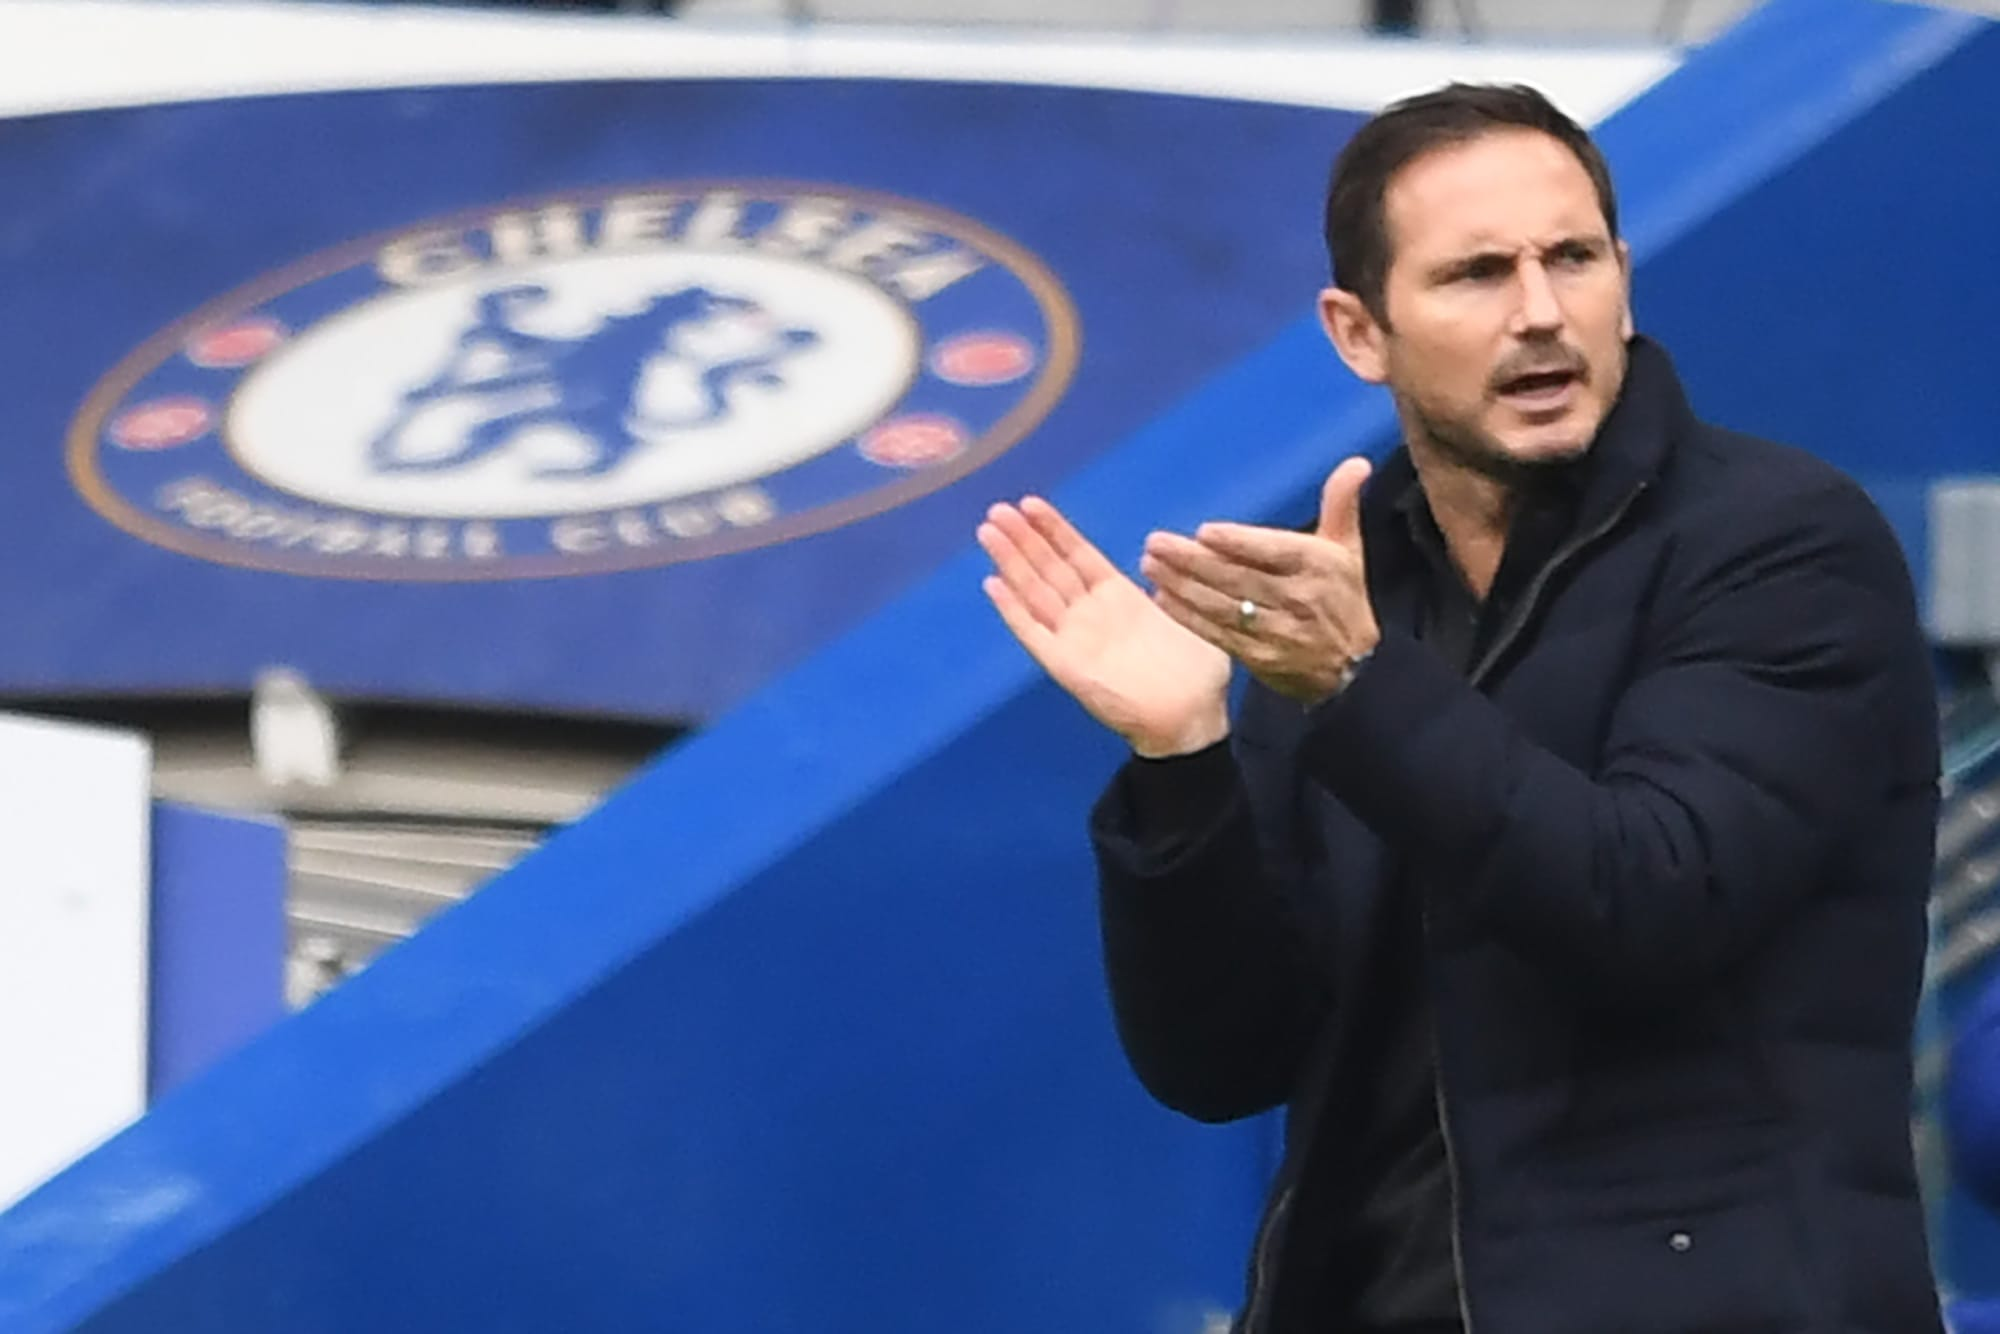 Chelsea: Lampard's in-game management did not fail vs. Southampton